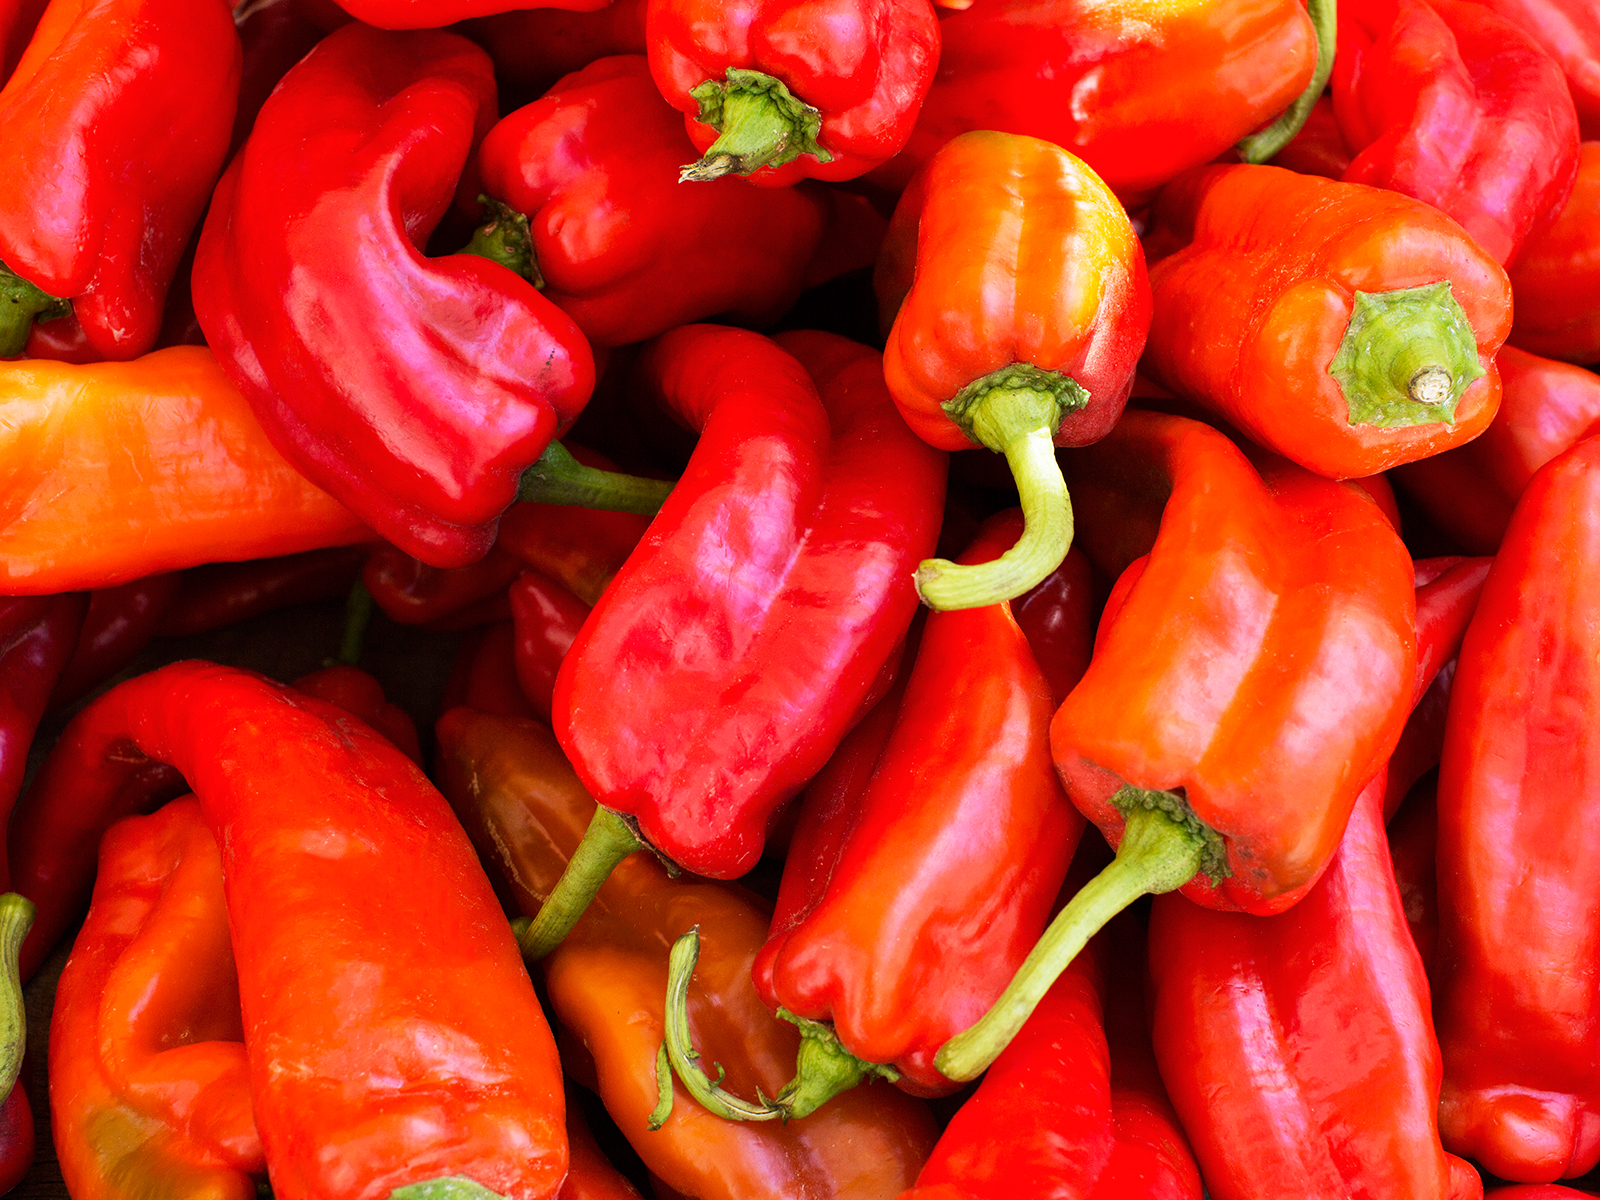 Is It Dangerous to Eat Really Hot Peppers?